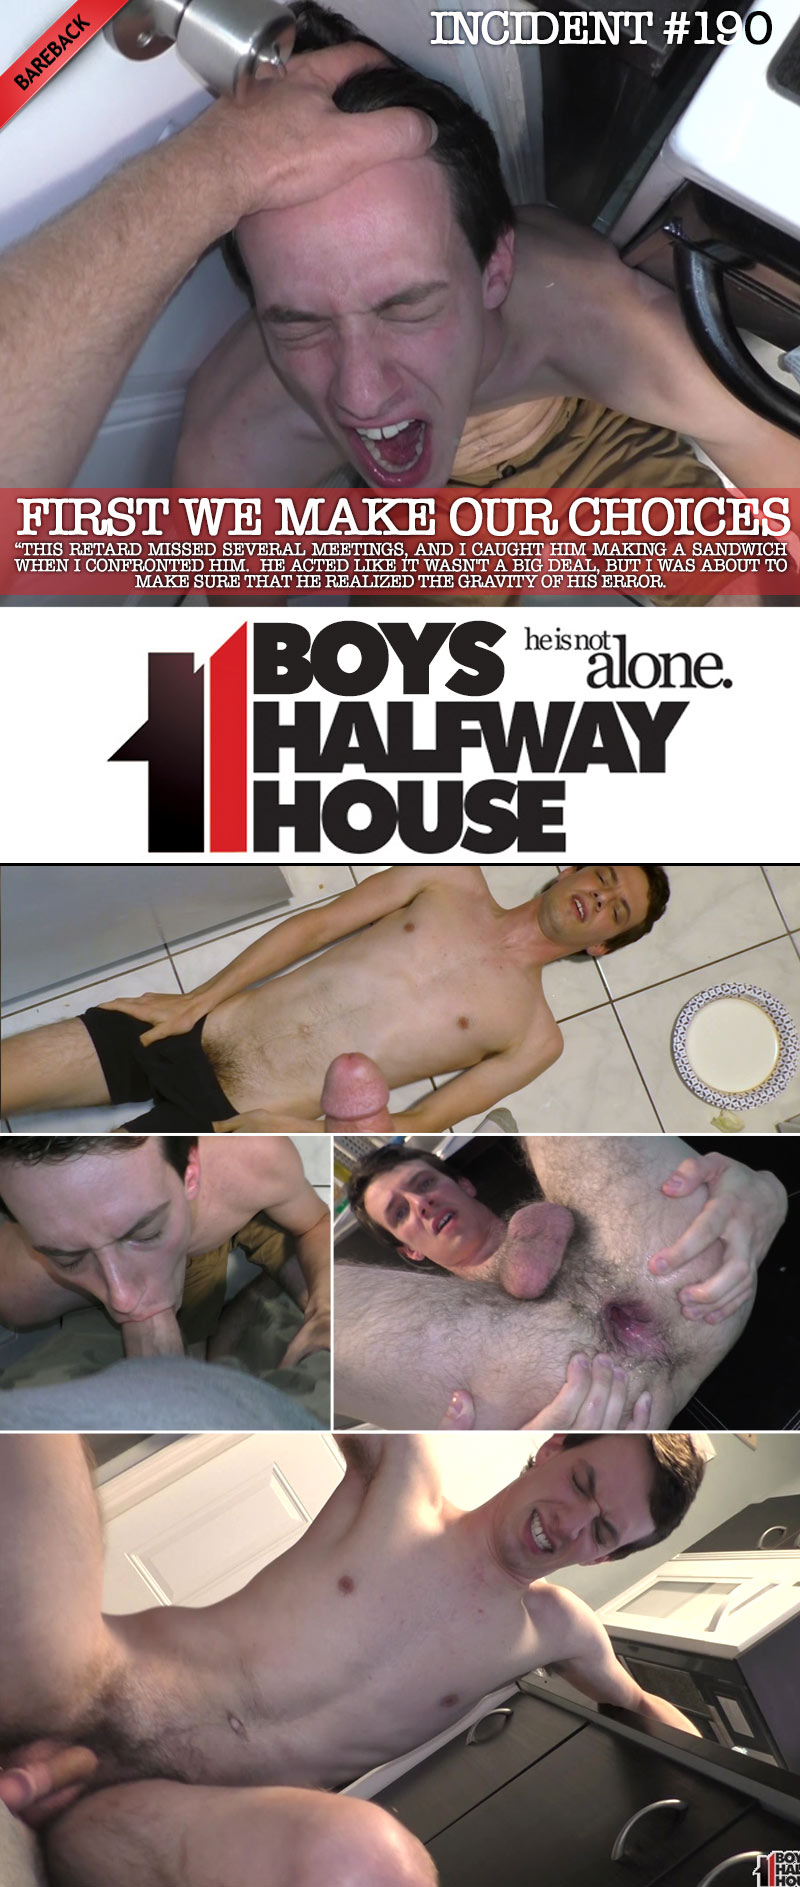 Incident #190: First We Make Our Choices at Boys Halfway House